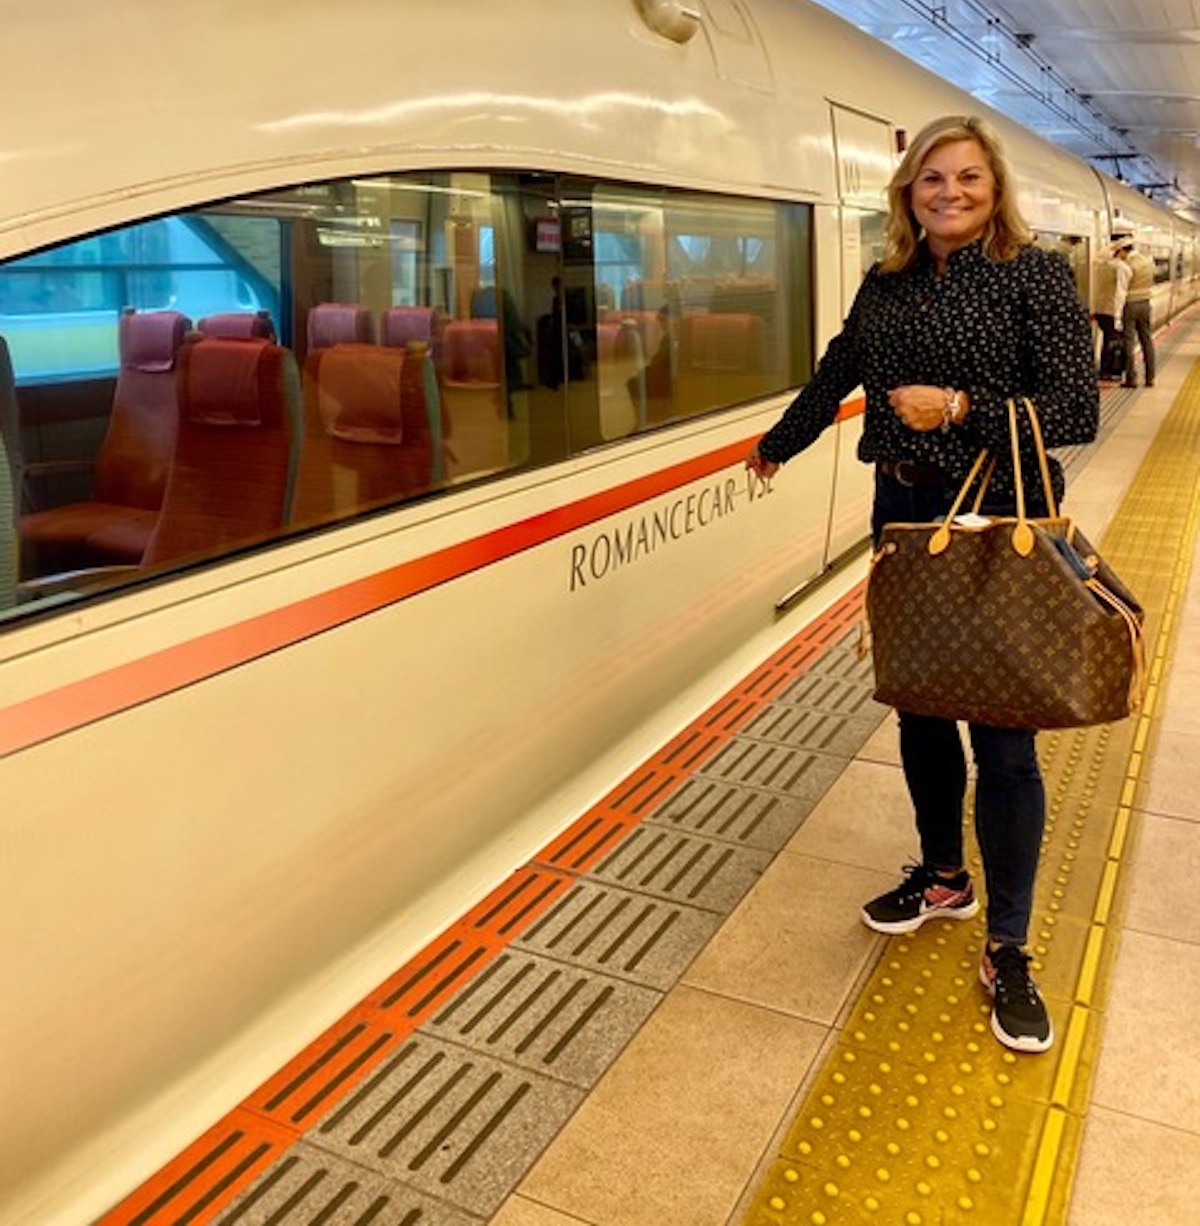 Japan by Train: Boarding the Romance Train